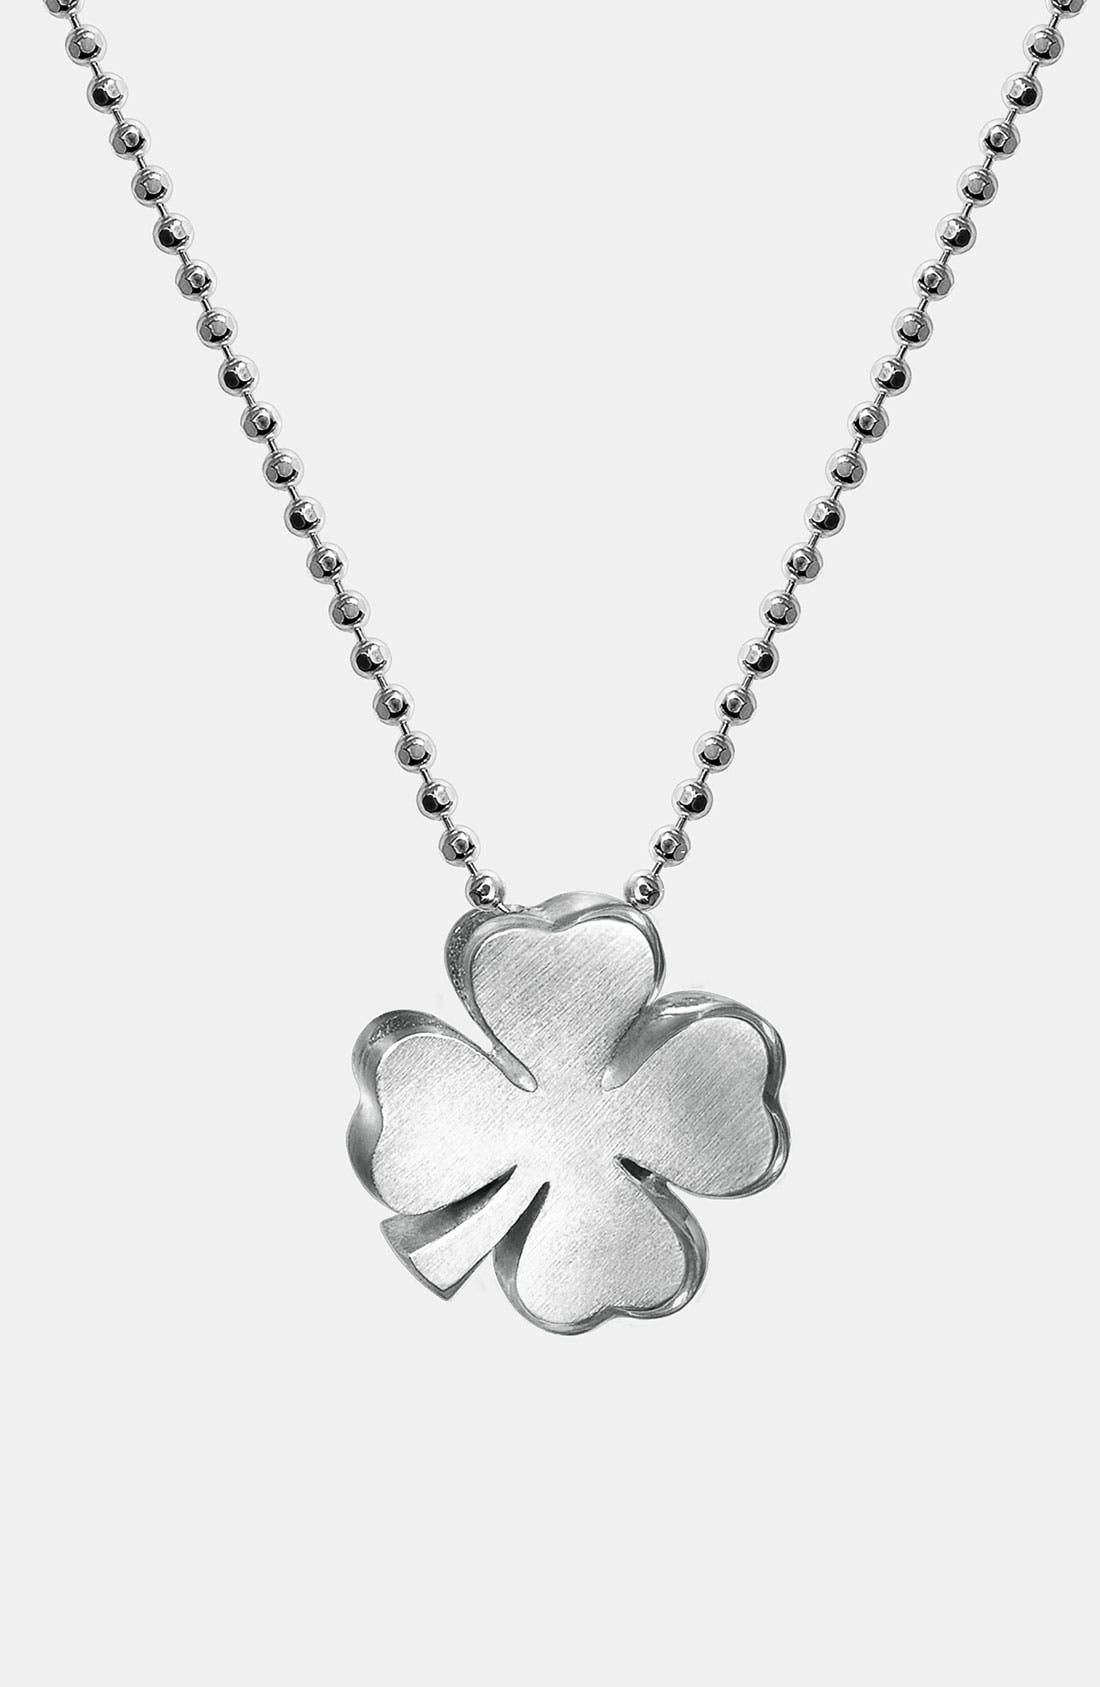 Alternate Image 1 Selected - Alex Woo 'Little Luck' Pendant Necklace